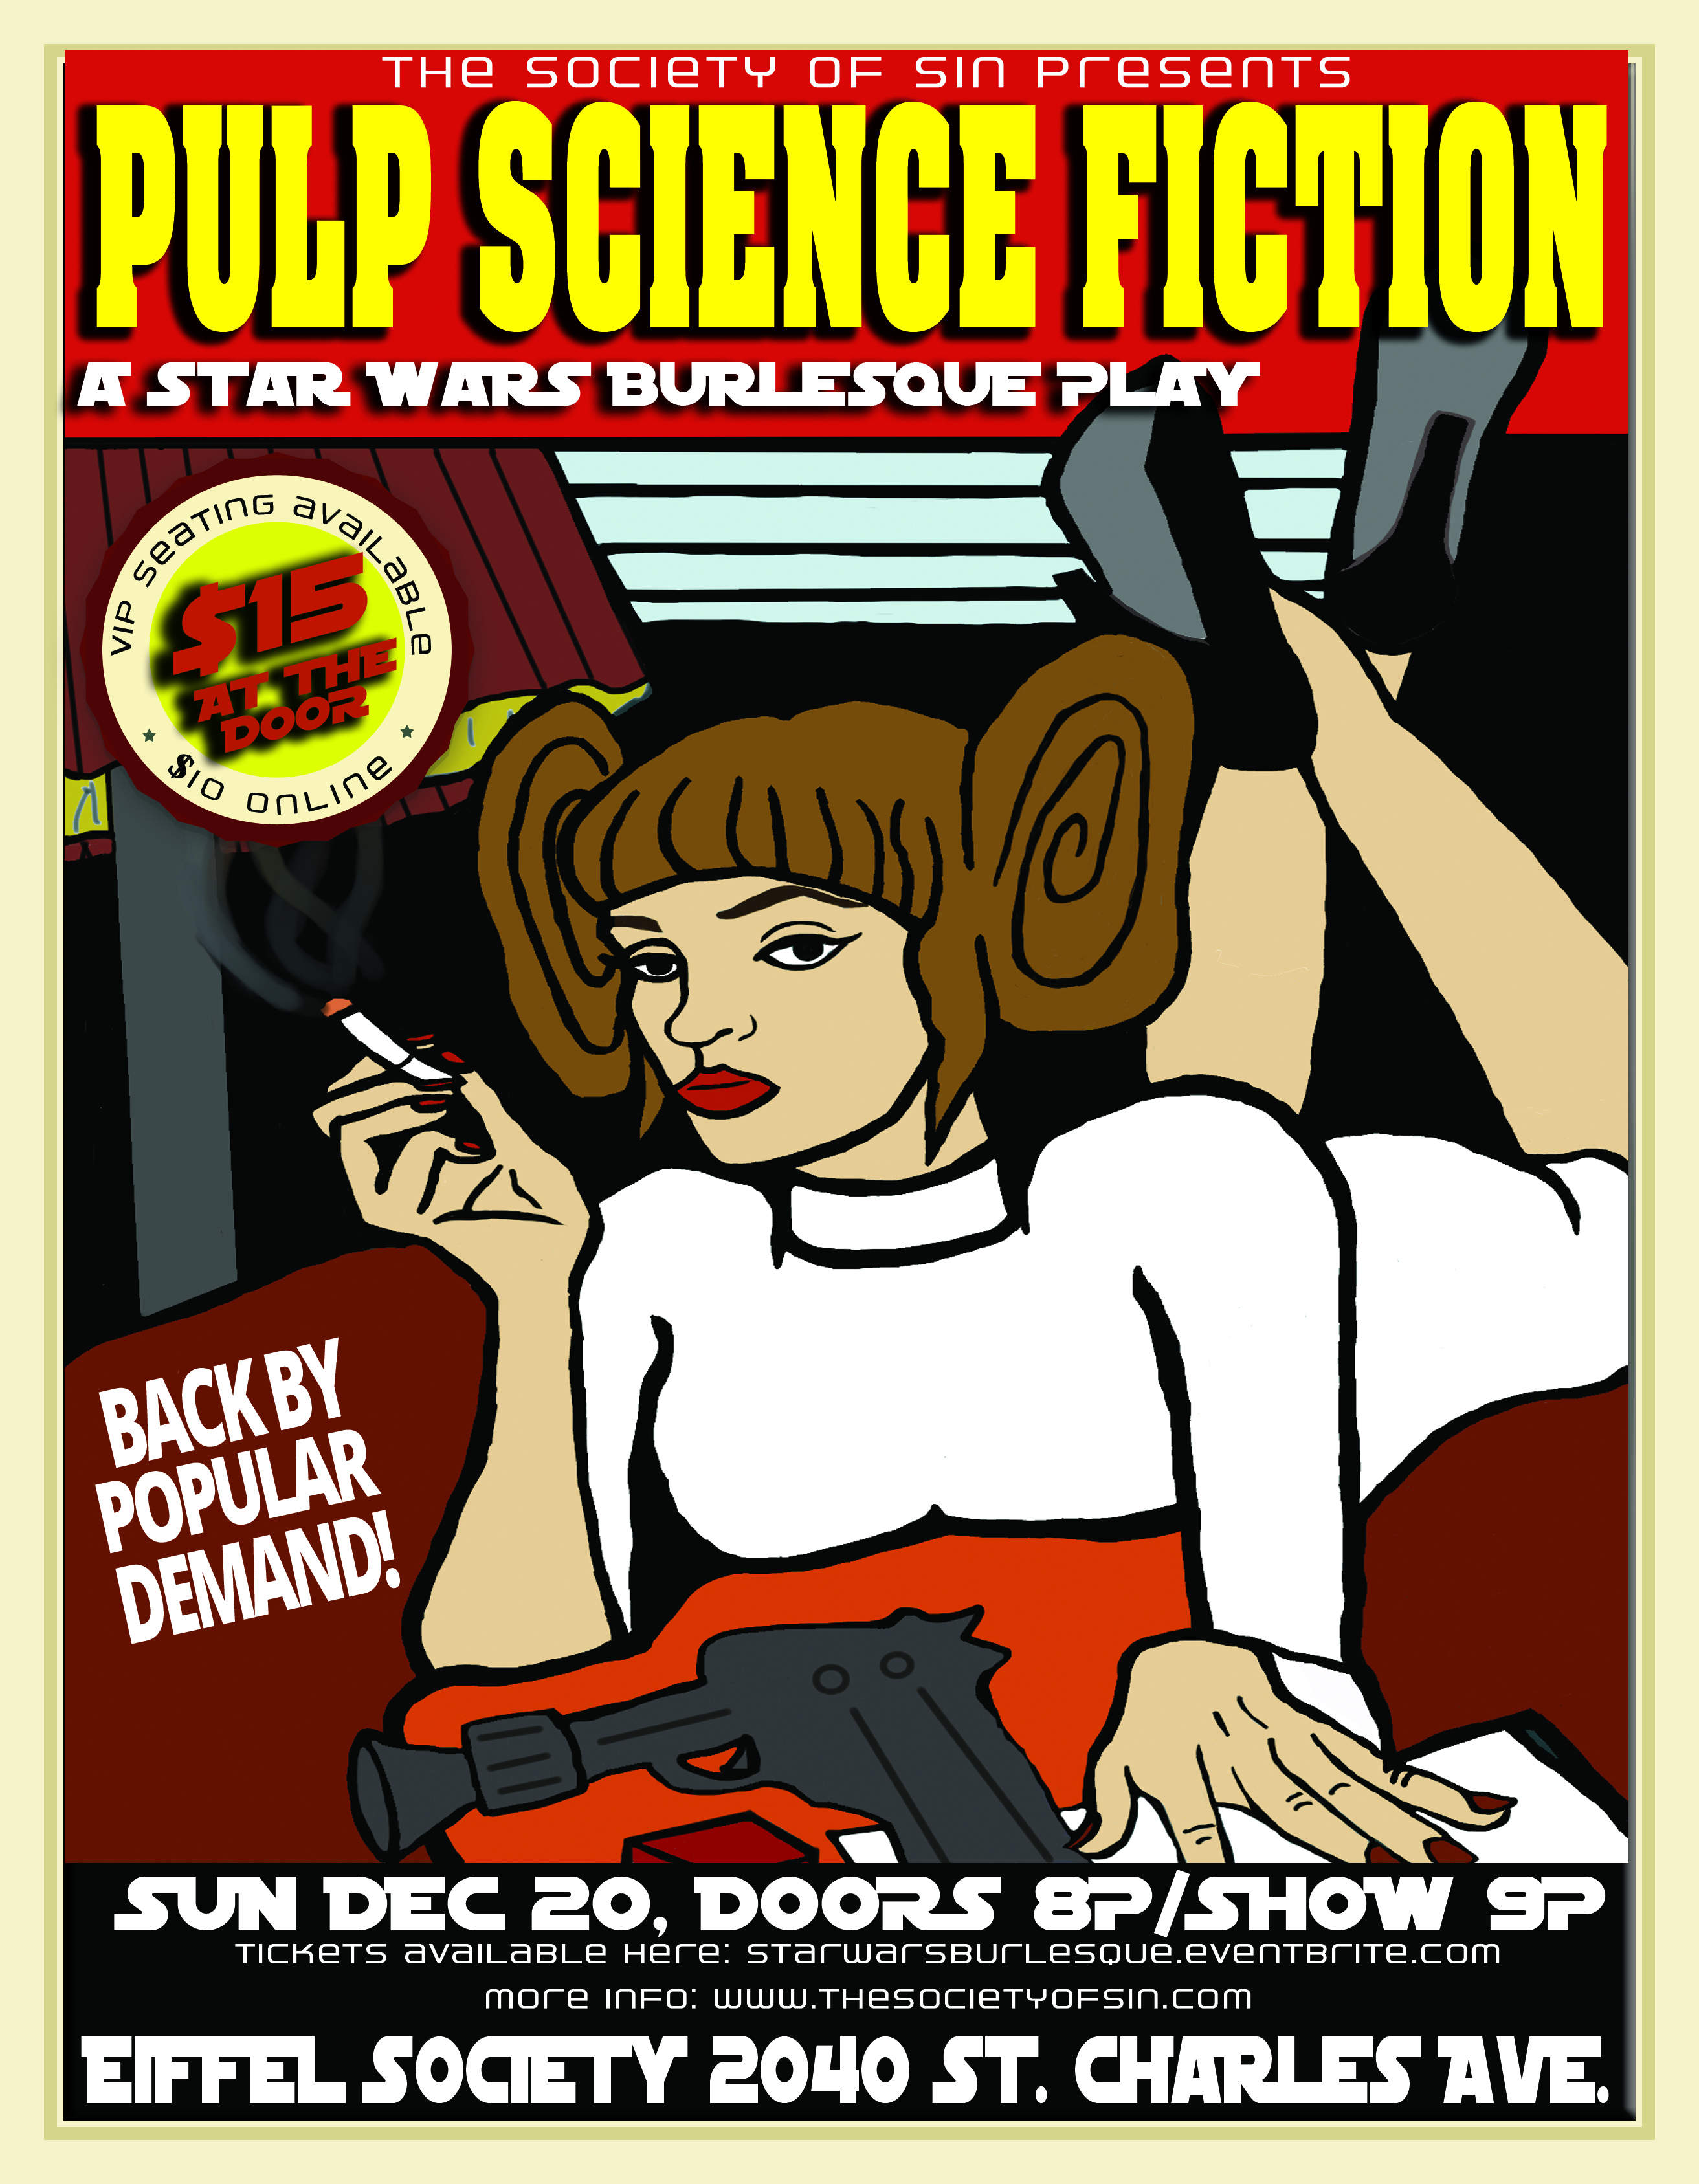 Pulp Science Fiction Star Wars Show